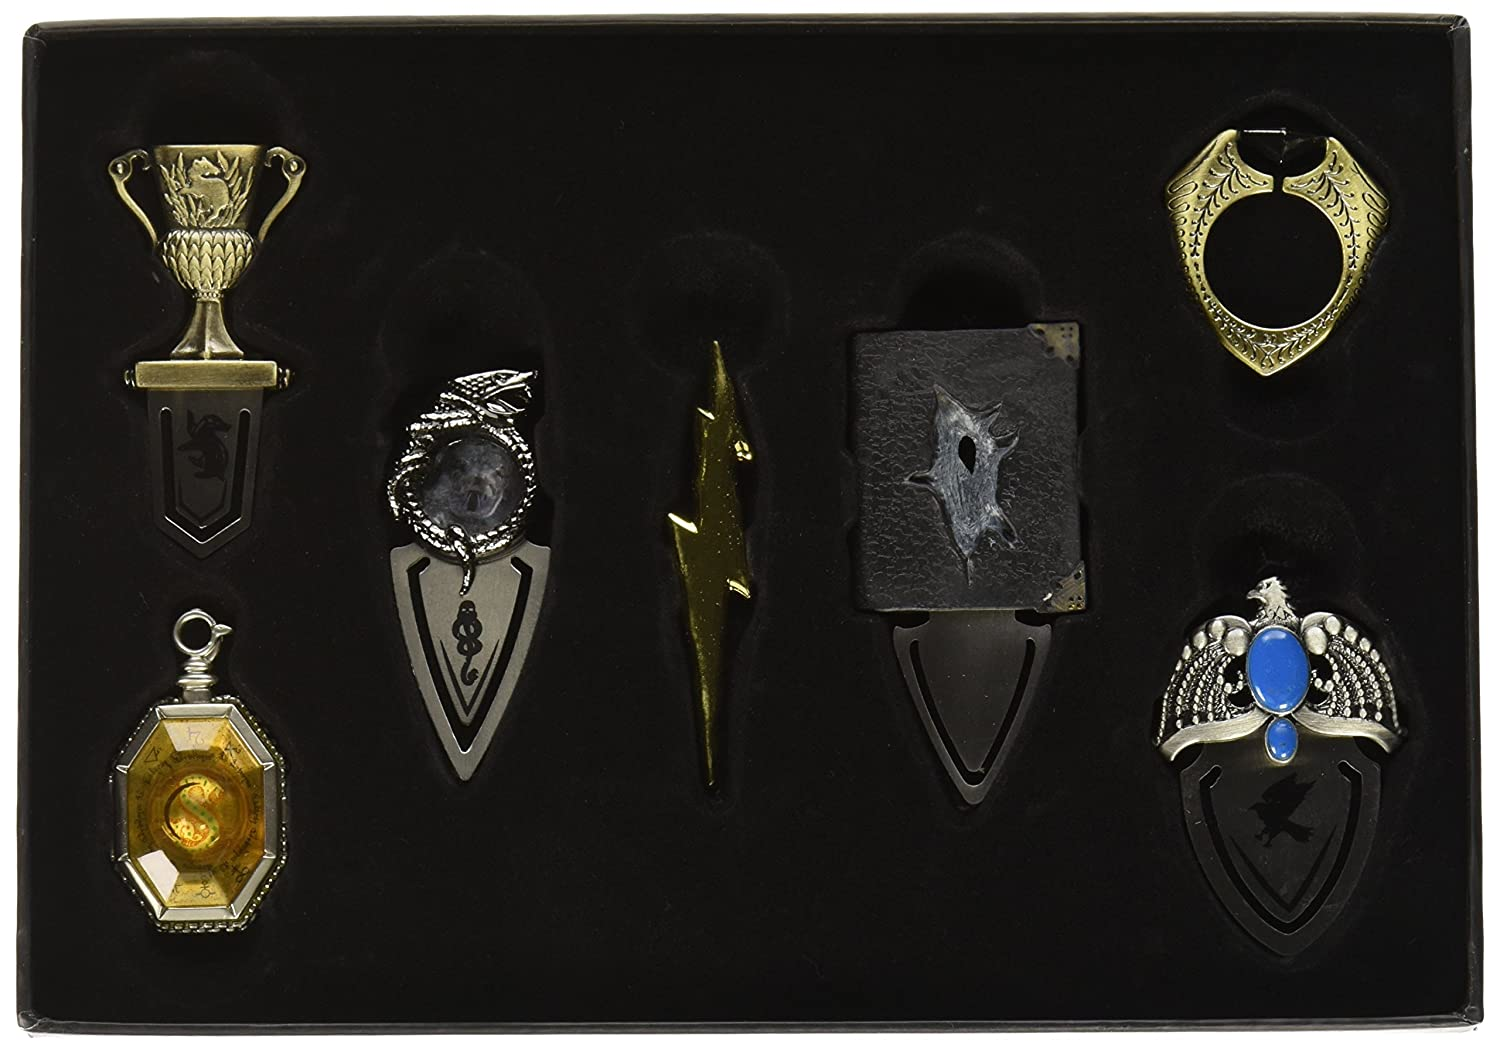 Coleccion De 7 Marcapaginas De Horrocruxes, Harry Potter Xmp